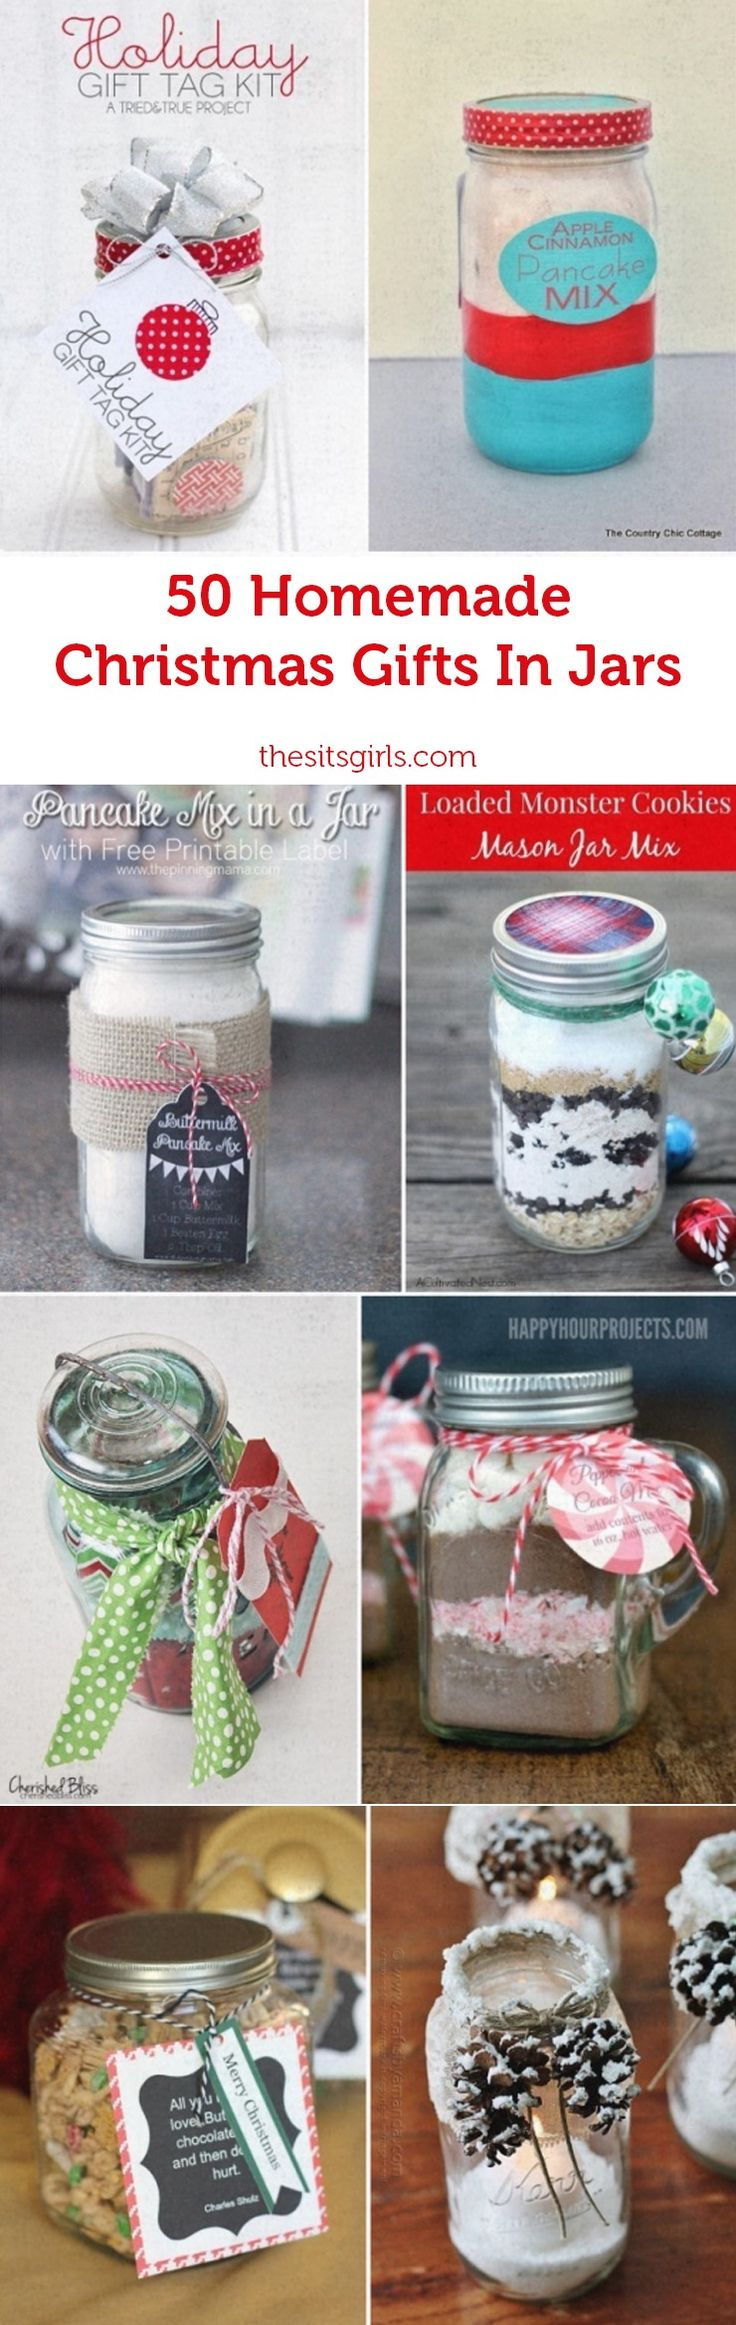 Friend Christmas Gifts Diy Easy DIY Christmas Gifts for Friends ...